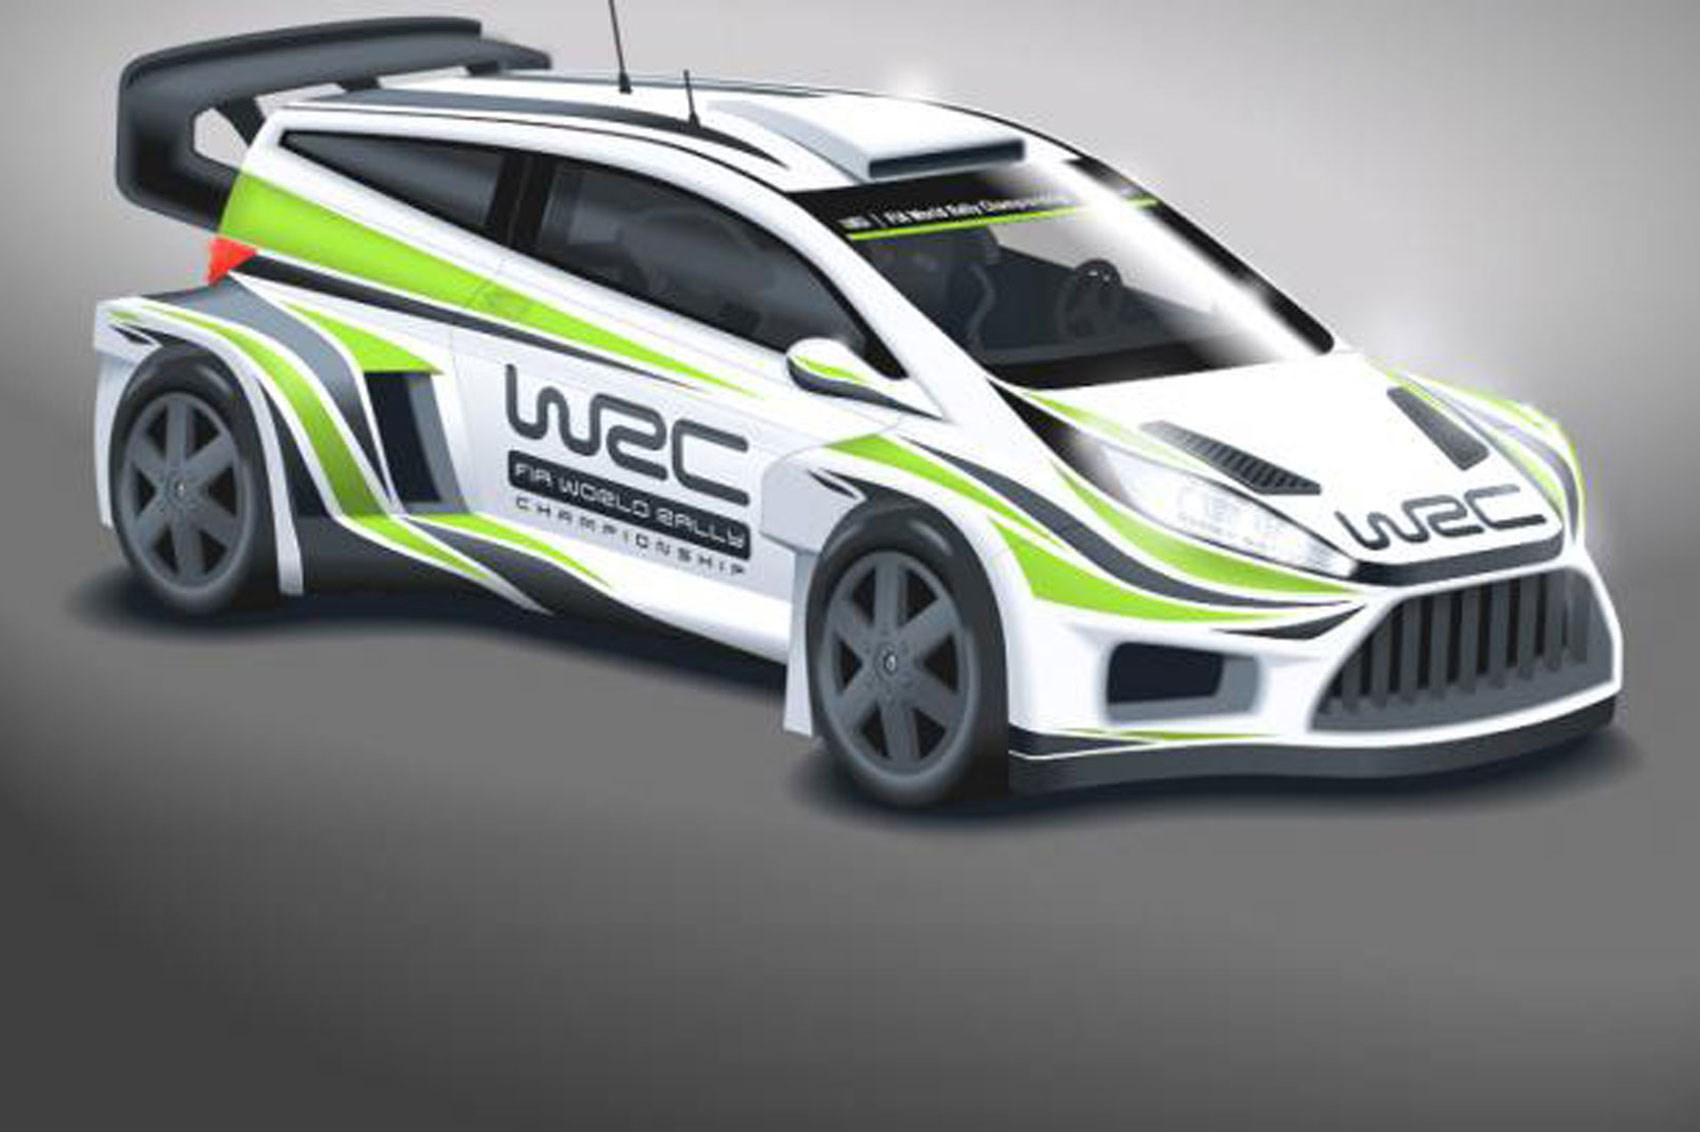 Ultrablogus  Ravishing Wild New Look For Wrc Cars In  By Car Magazine With Magnificent Wrc Cars Will Get Wider Bodies Bigger Wings And More Power For  With Breathtaking  Gmc Sierra Interior Also Honda Crv Interior Accessories In Addition Car Interior Care And Mazda Tribute Interior As Well As Gm Interior Color Codes Additionally  Nissan Quest Interior From Carmagazinecouk With Ultrablogus  Magnificent Wild New Look For Wrc Cars In  By Car Magazine With Breathtaking Wrc Cars Will Get Wider Bodies Bigger Wings And More Power For  And Ravishing  Gmc Sierra Interior Also Honda Crv Interior Accessories In Addition Car Interior Care From Carmagazinecouk